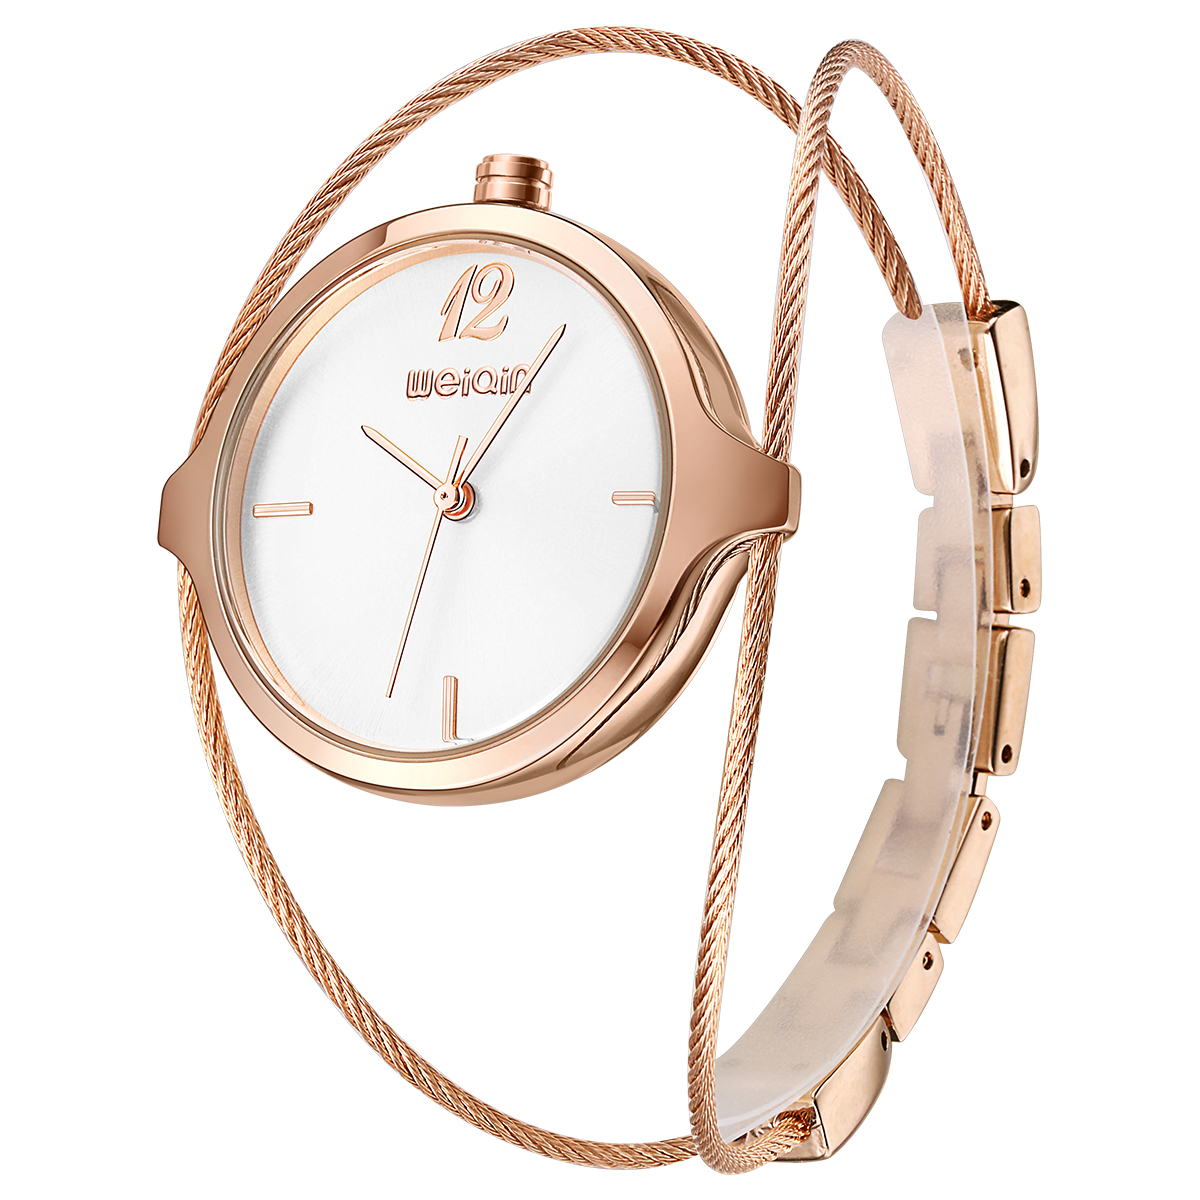 Top Brand Lady Luxury Gold Watch Fashion Women Metal Bracelet Watches Crystal Bracelets Relogio Femininos Slim Strap Wristwatch gold watchband for luxury watches brand stylish watches accessories 18mm 20mm 22mm fashion thiner bracelets promotion price new